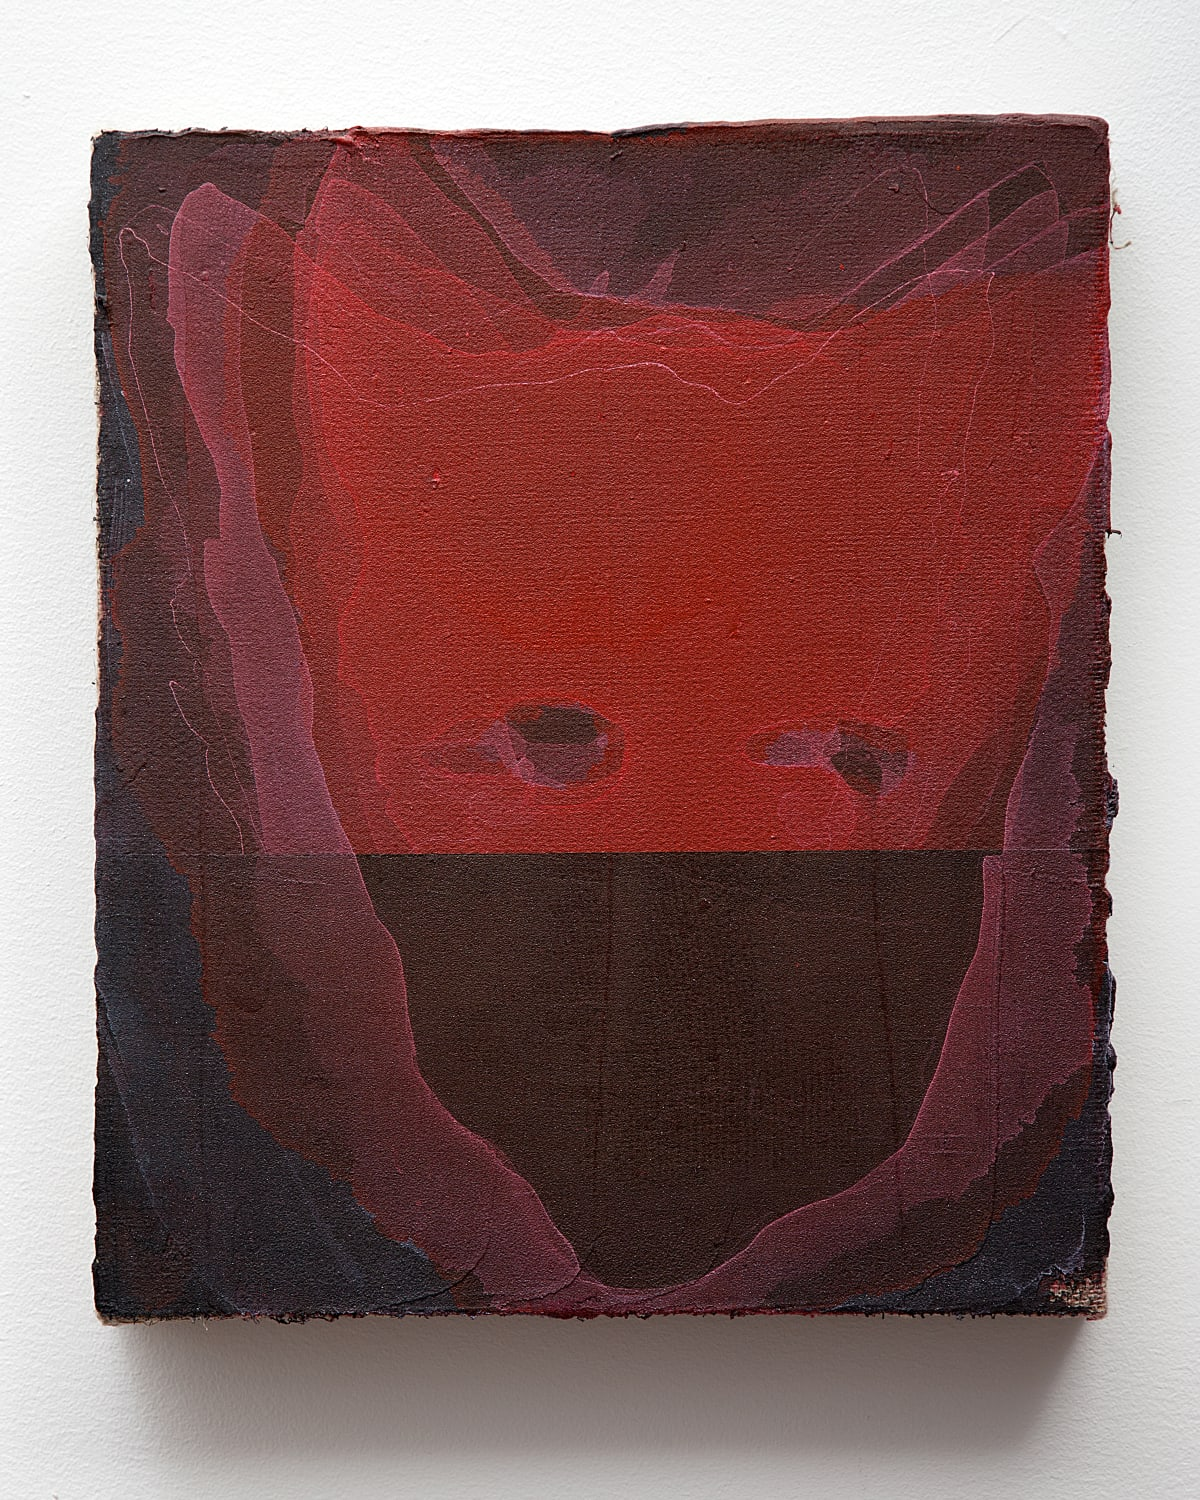 Duane Slick, Amending Darkness, 2012